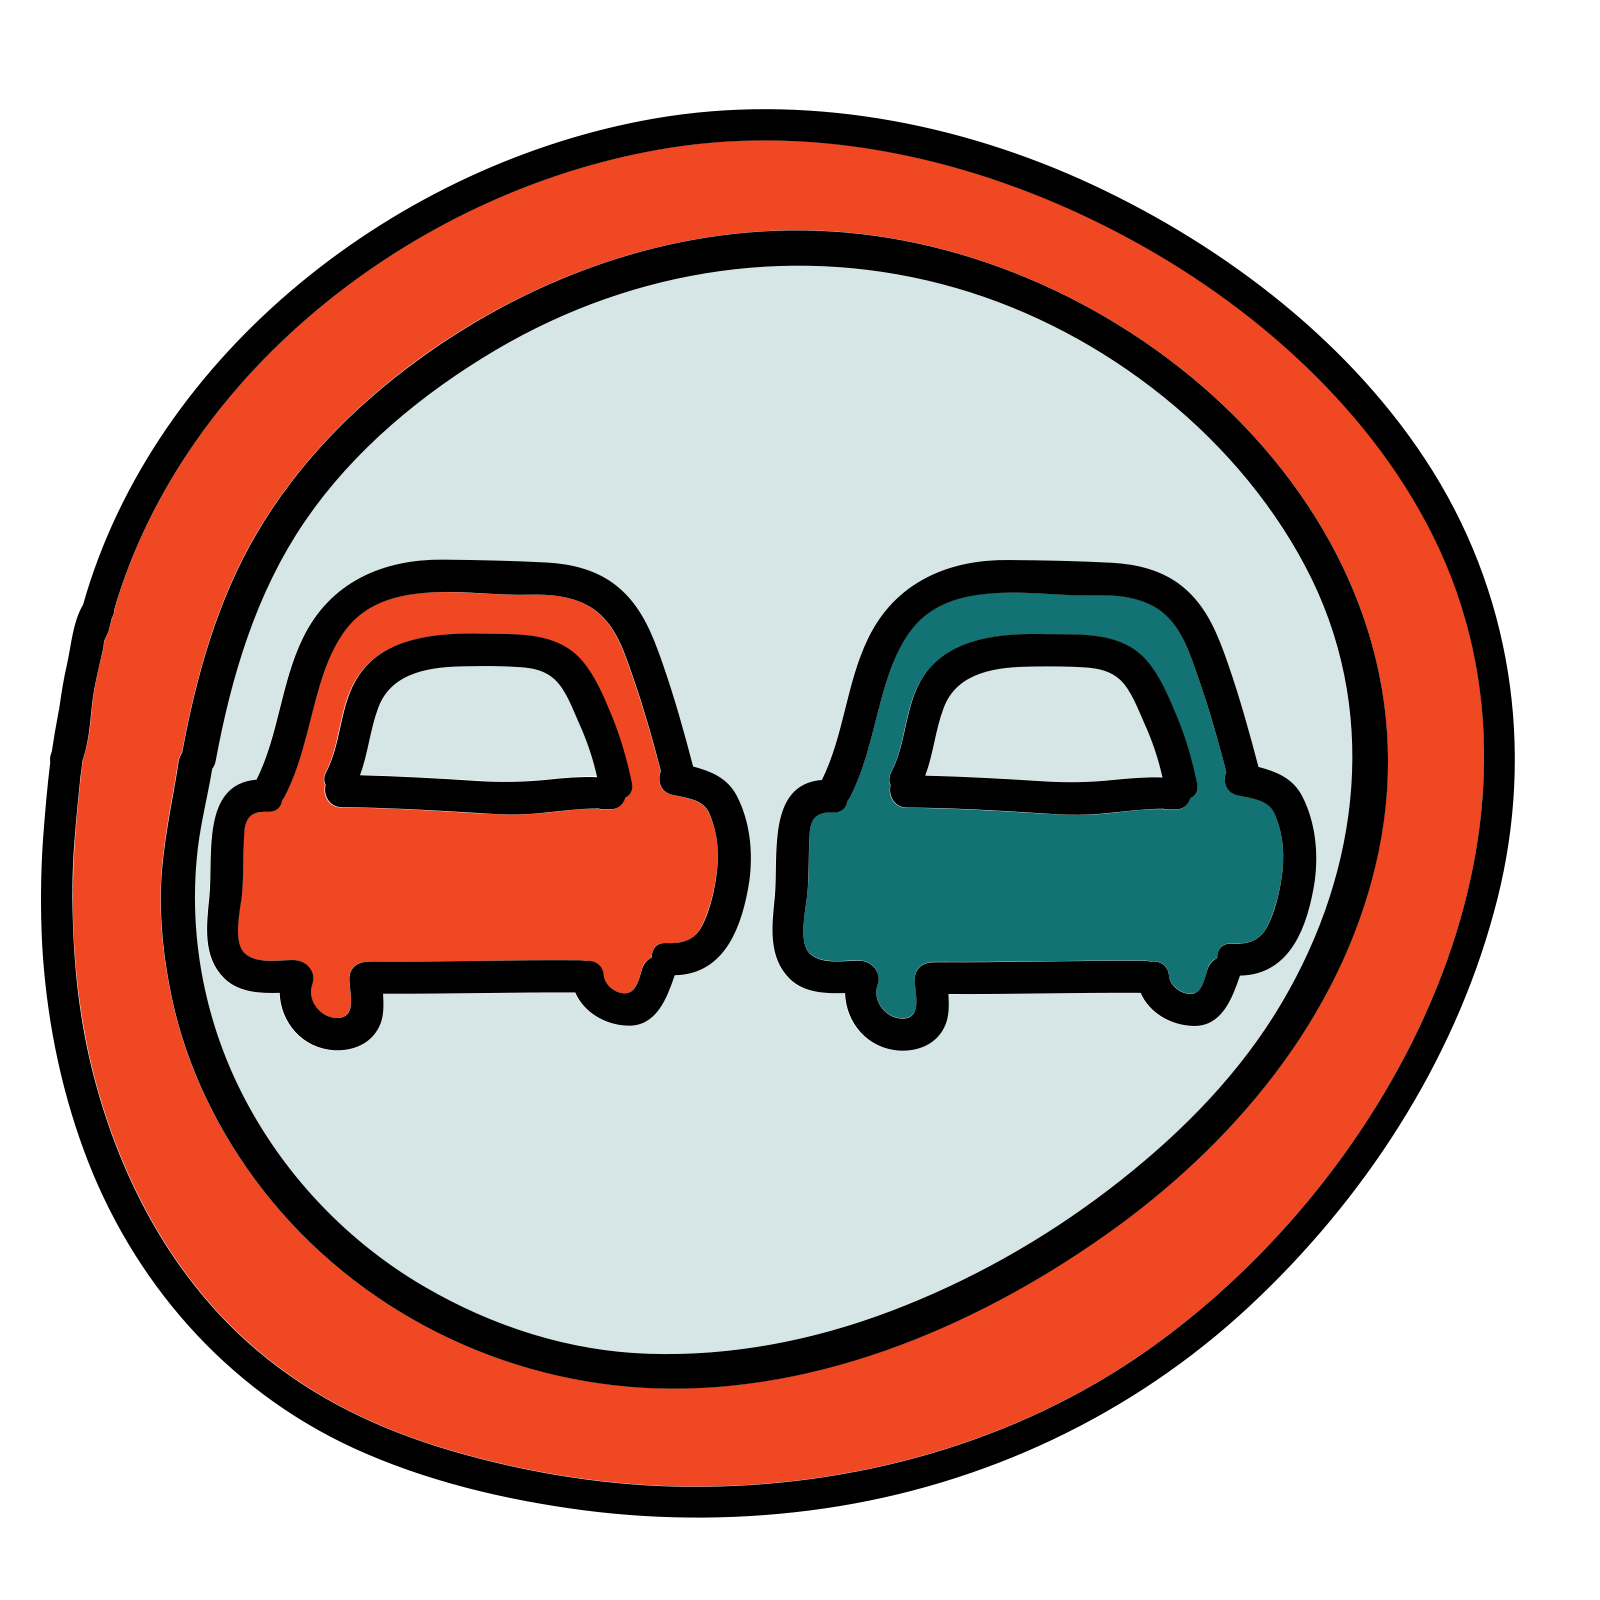 Roadsign vector road design. Sign no overtaking icon